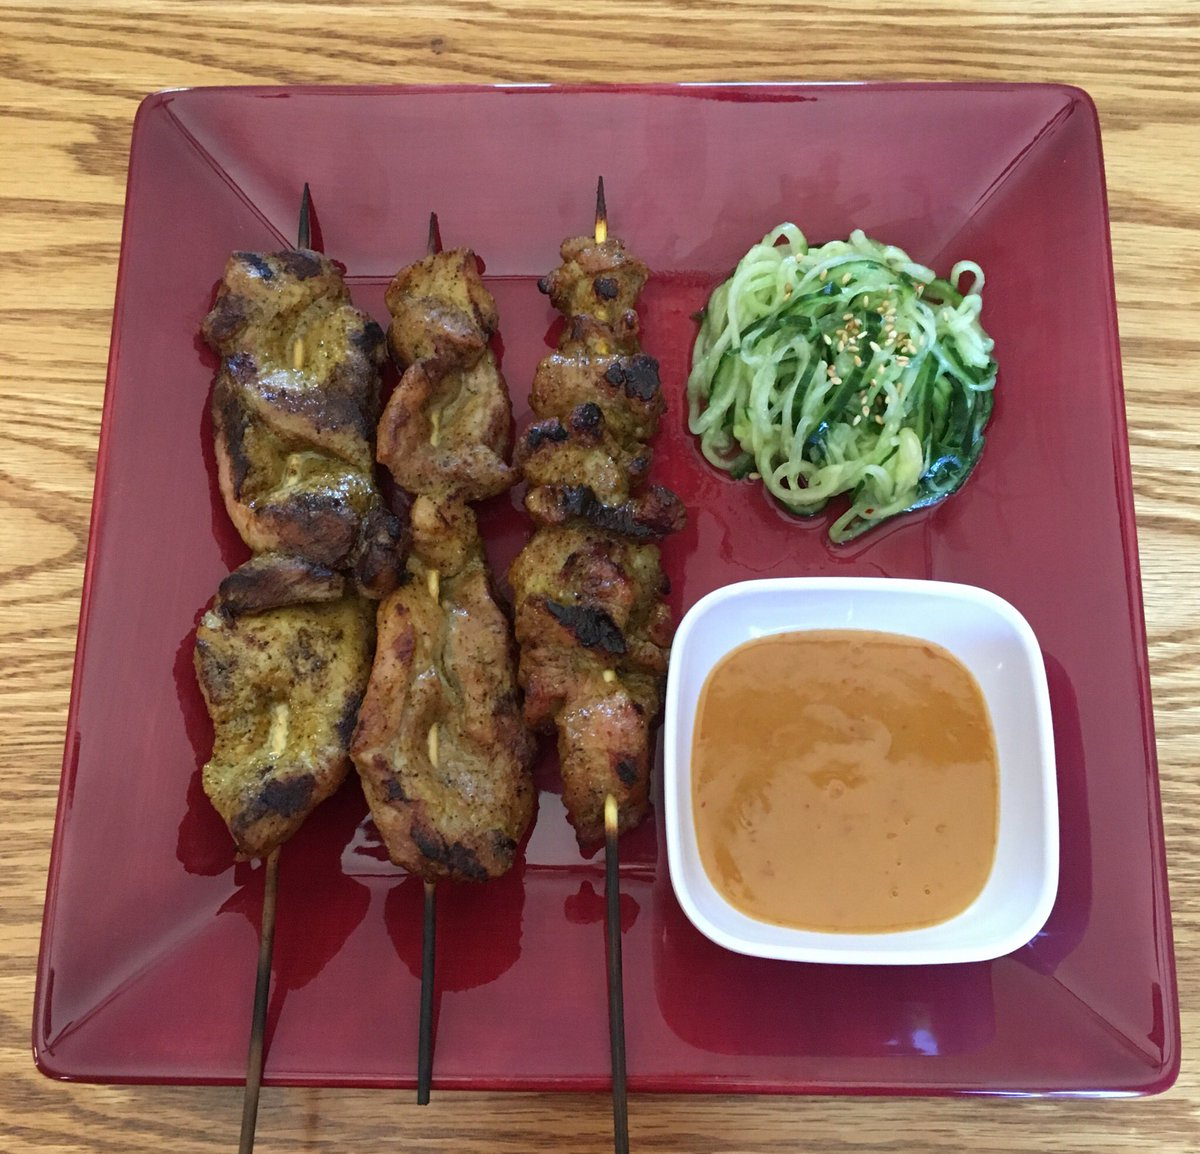 Street vendor pork satay & peanut sauce (made with soy butter due to allergies) with a side of spiralized cucumber salad. OMG! @jettila these are the bomb!! Recipes # 10 & 11 we've made from your cookbook. Still not disappointed. #101AsianDishes #youcanteatjustone<br>http://pic.twitter.com/SHWkUB4Y0G